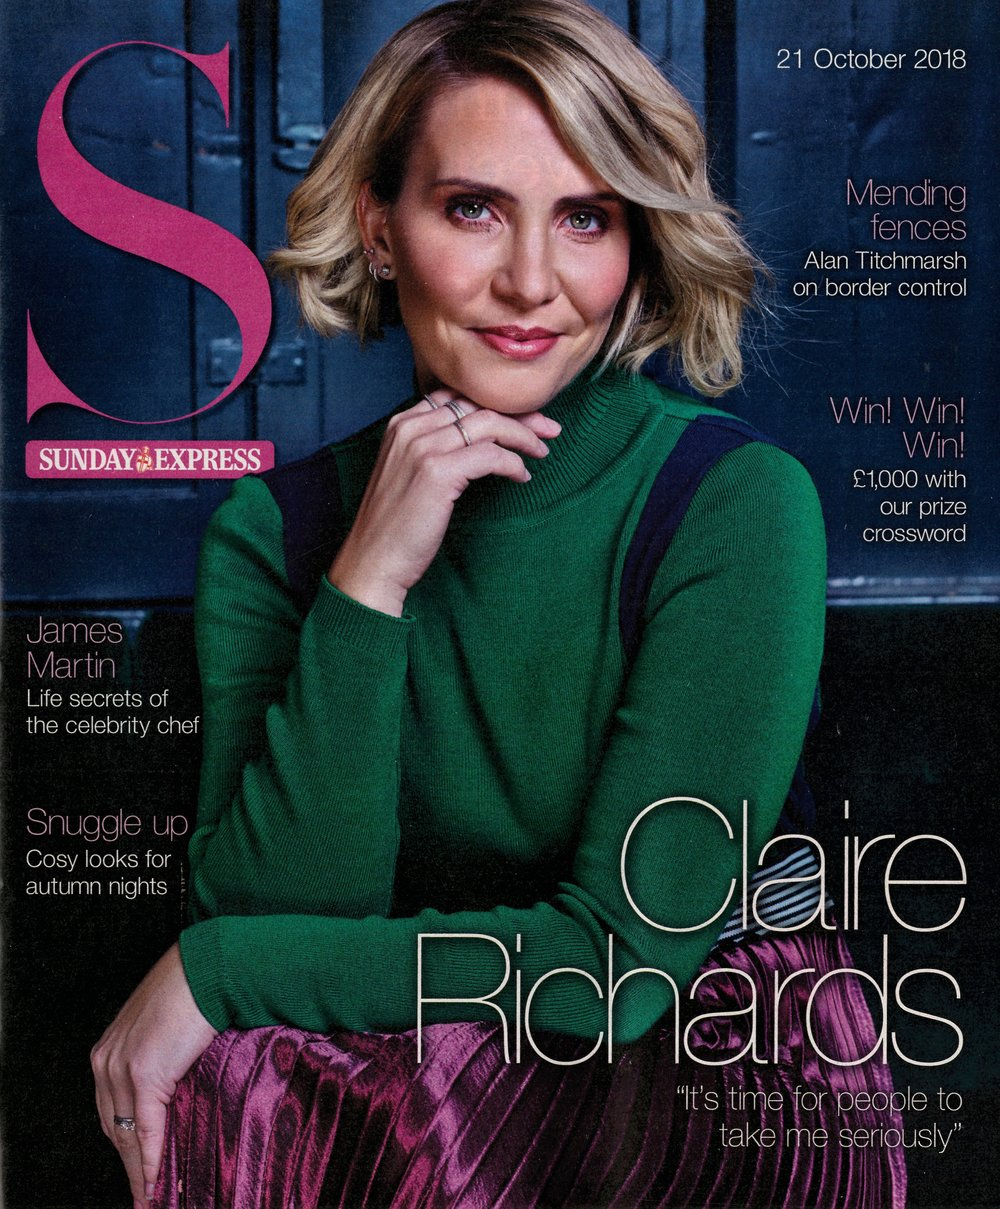 S Magazine 21 Oct 2018 Cover.jpg